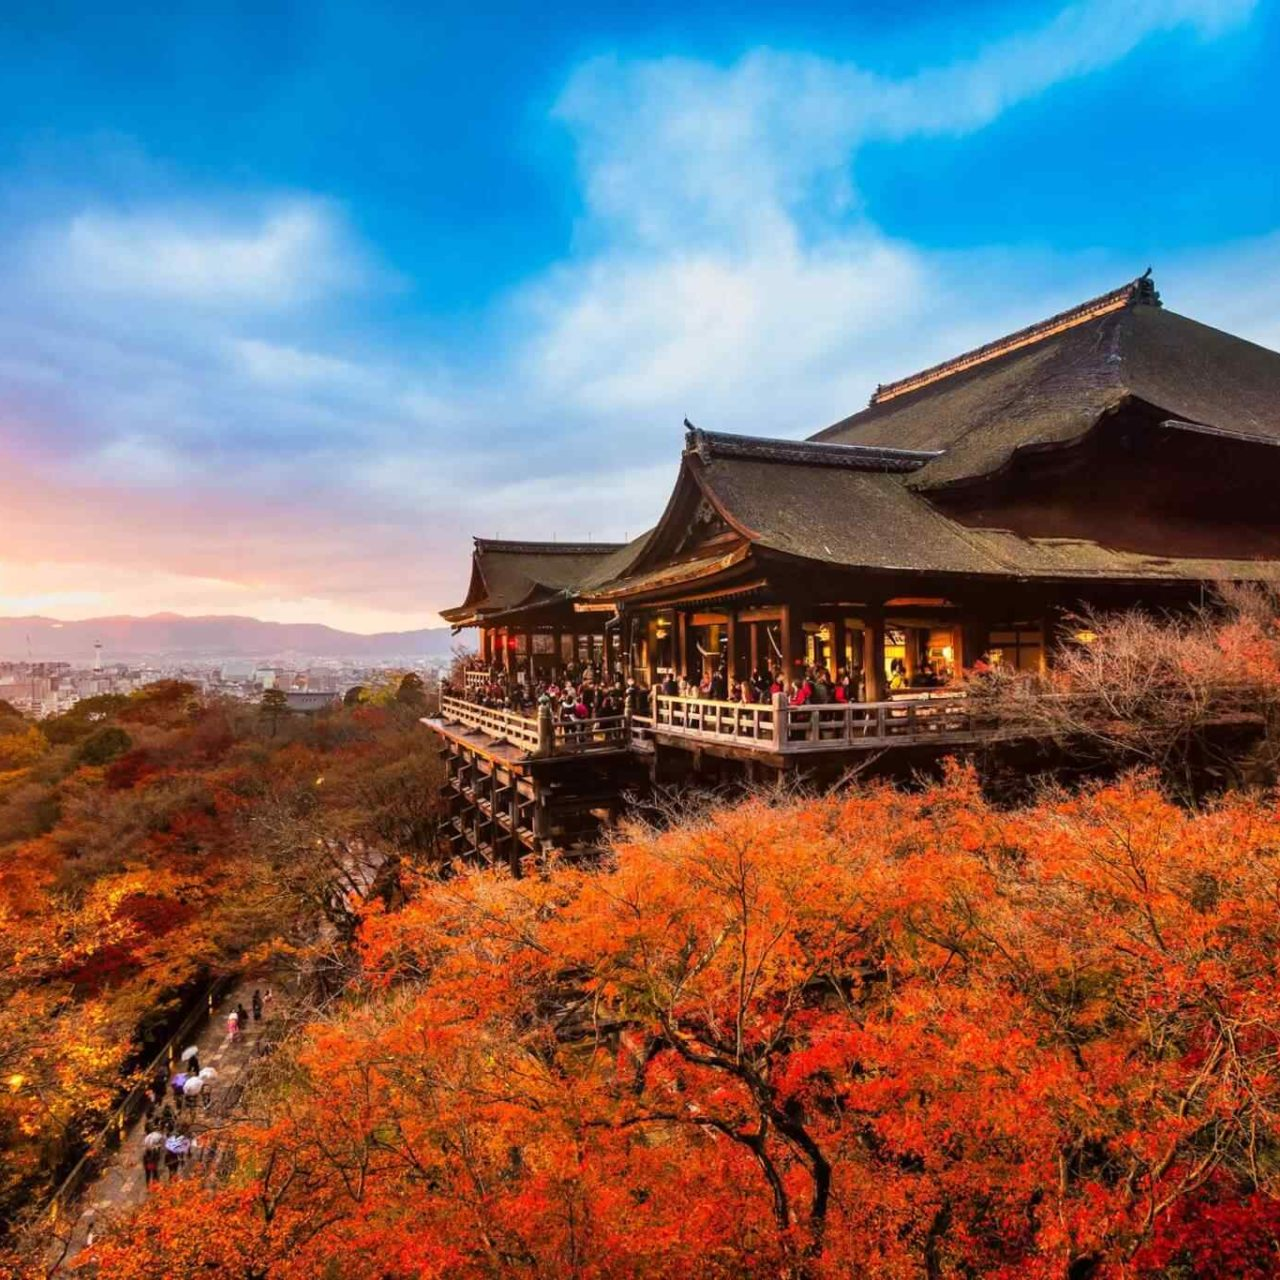 https://www.touripp.it/wp-content/uploads/2018/09/destination-kyoto-01-1280x1280.jpg